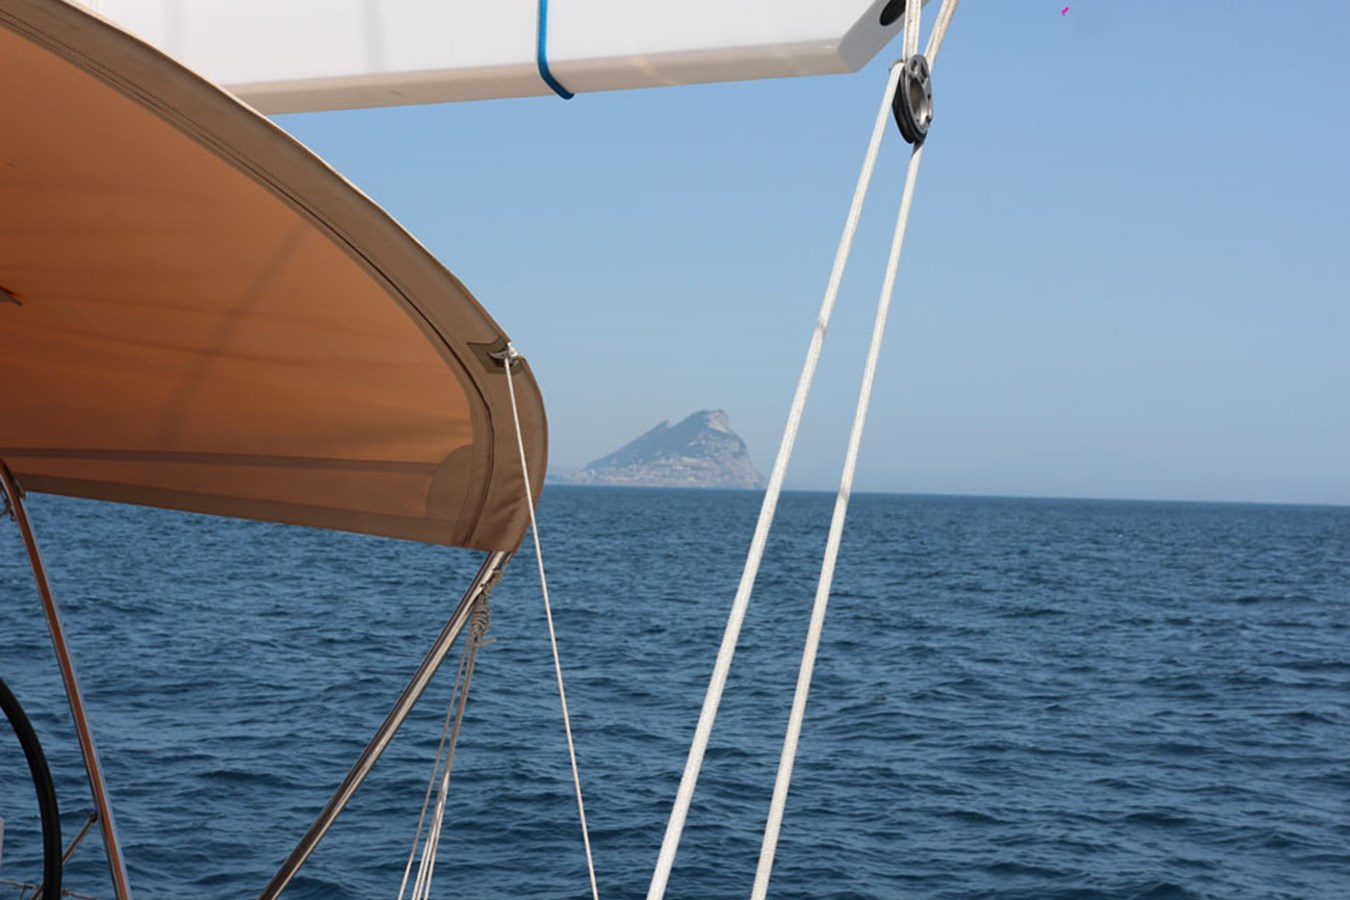 oyster-72-38 2005 OYSTER MARINE LTD Oyster 72 Cruising Sailboat 2707581